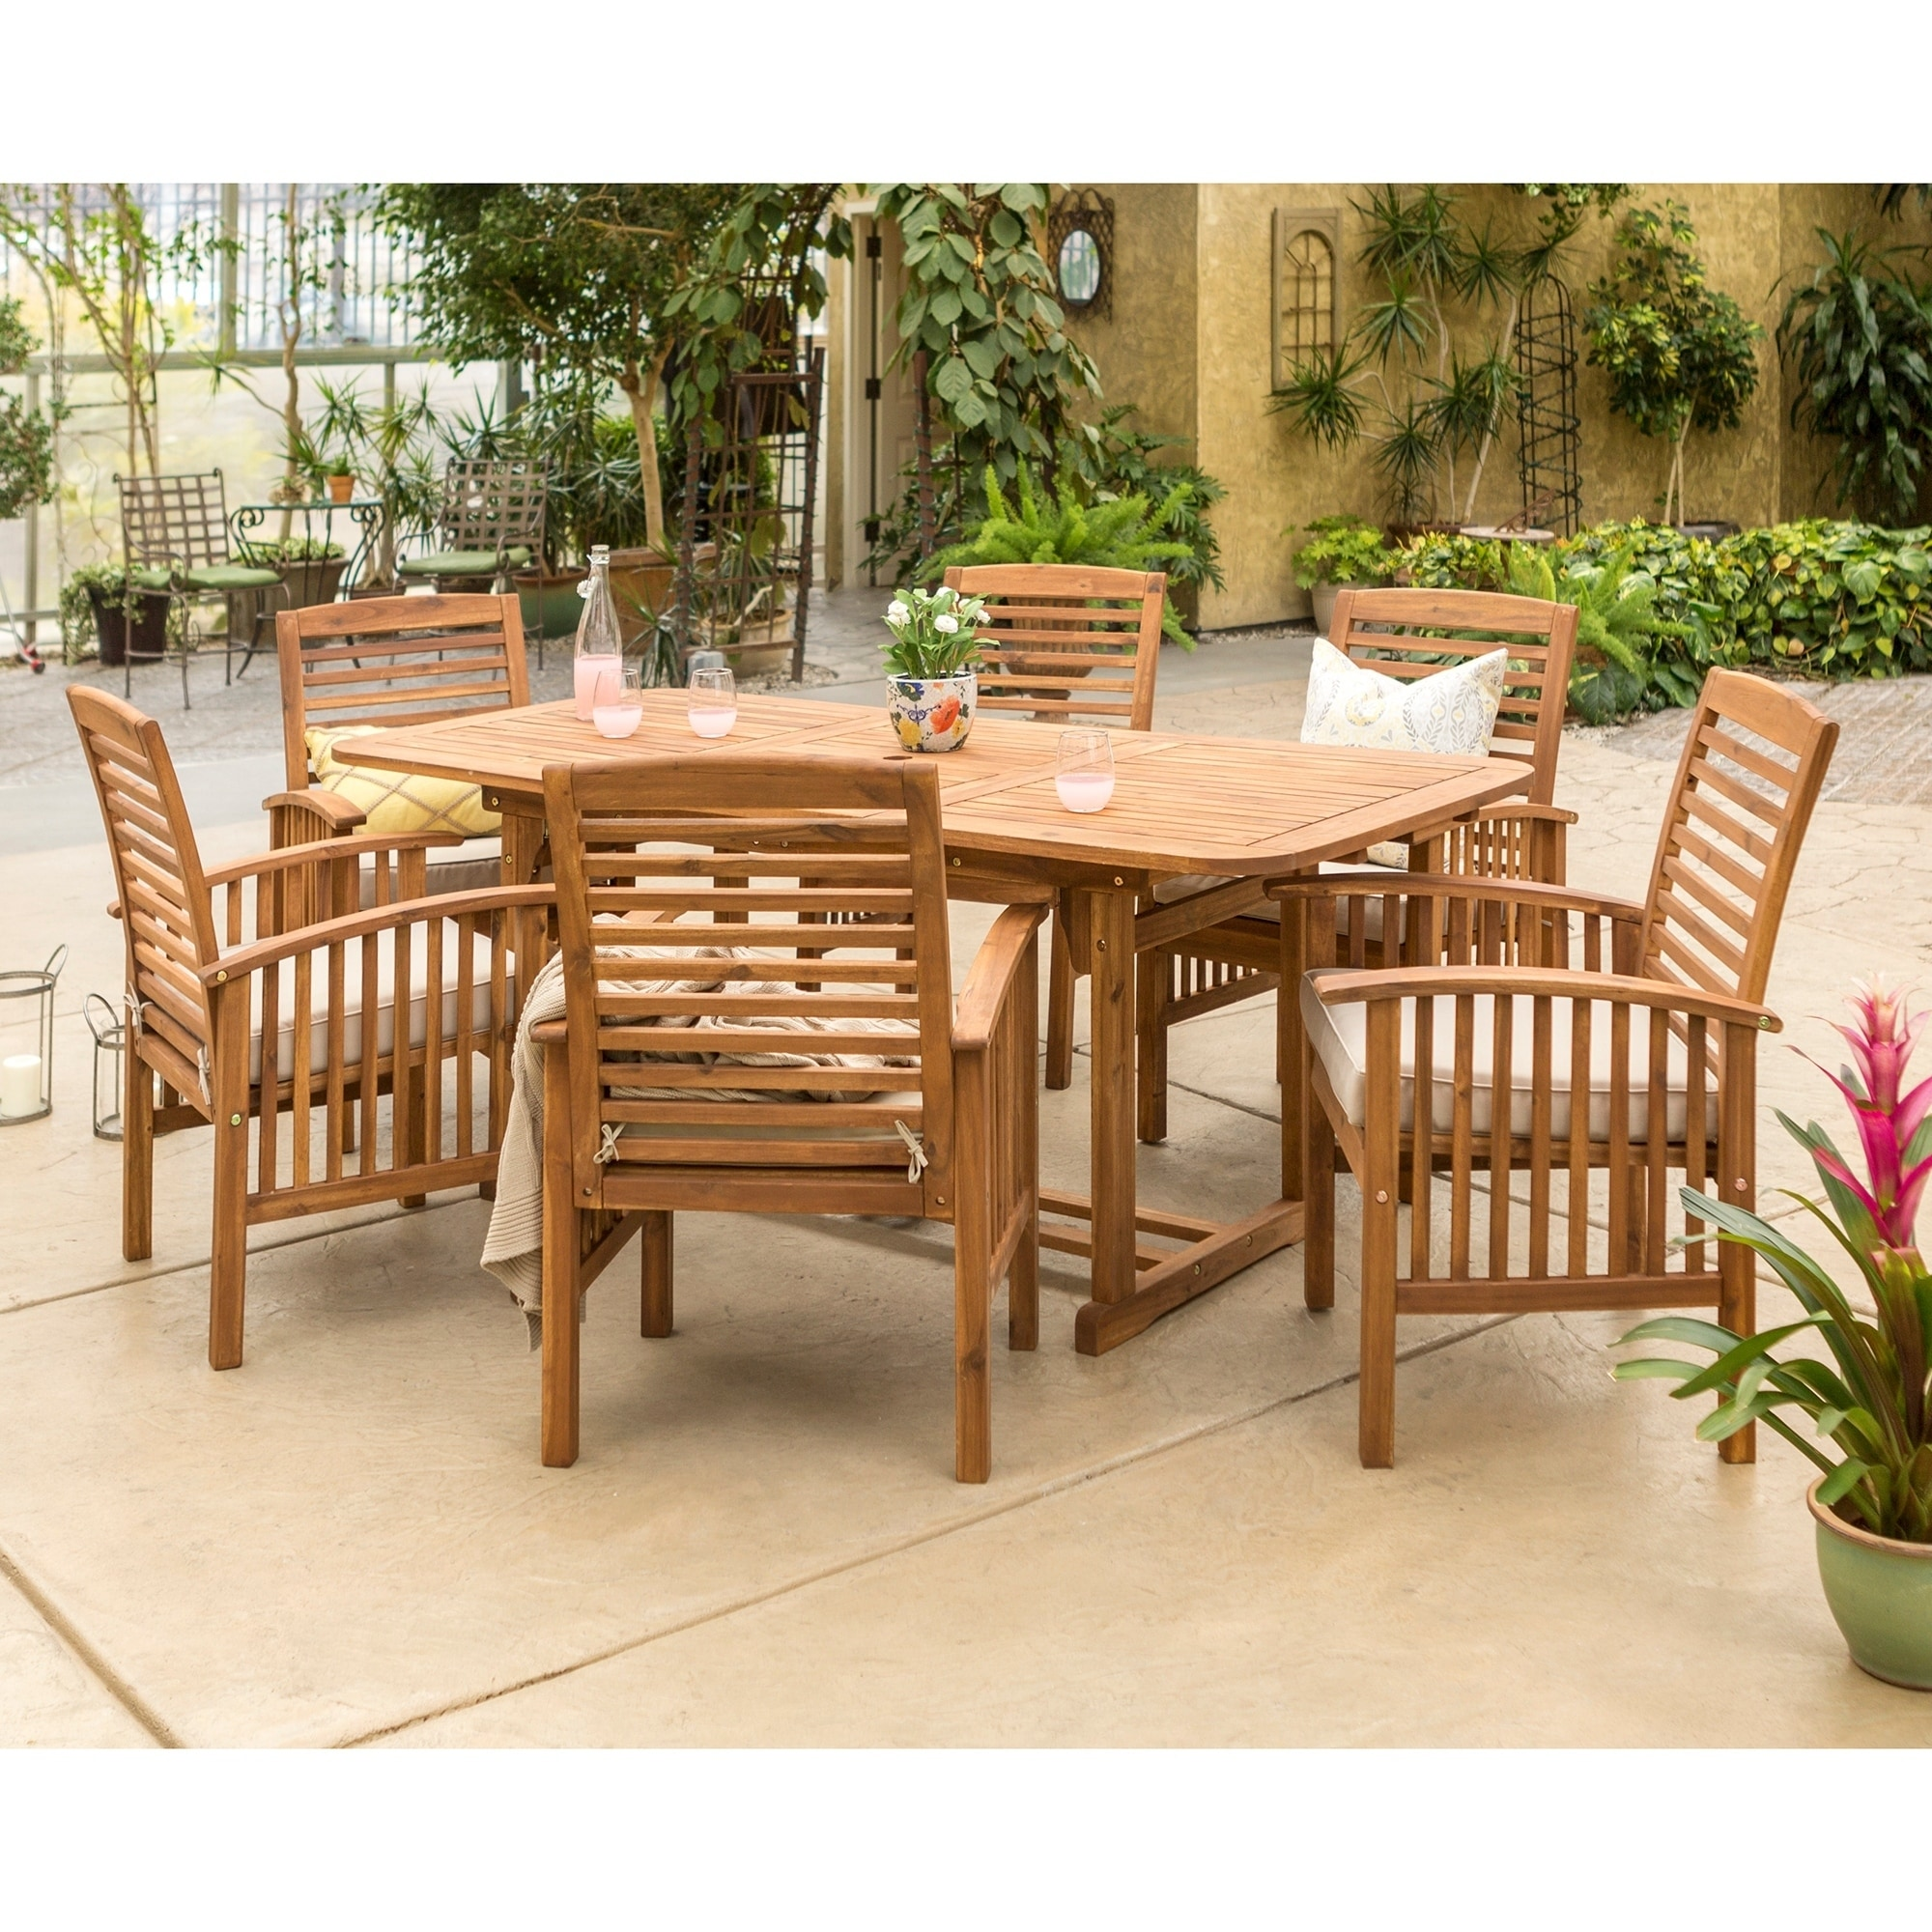 Acacia Patio Furniture | Find Great Outdoor Seating & Dining Deals ...